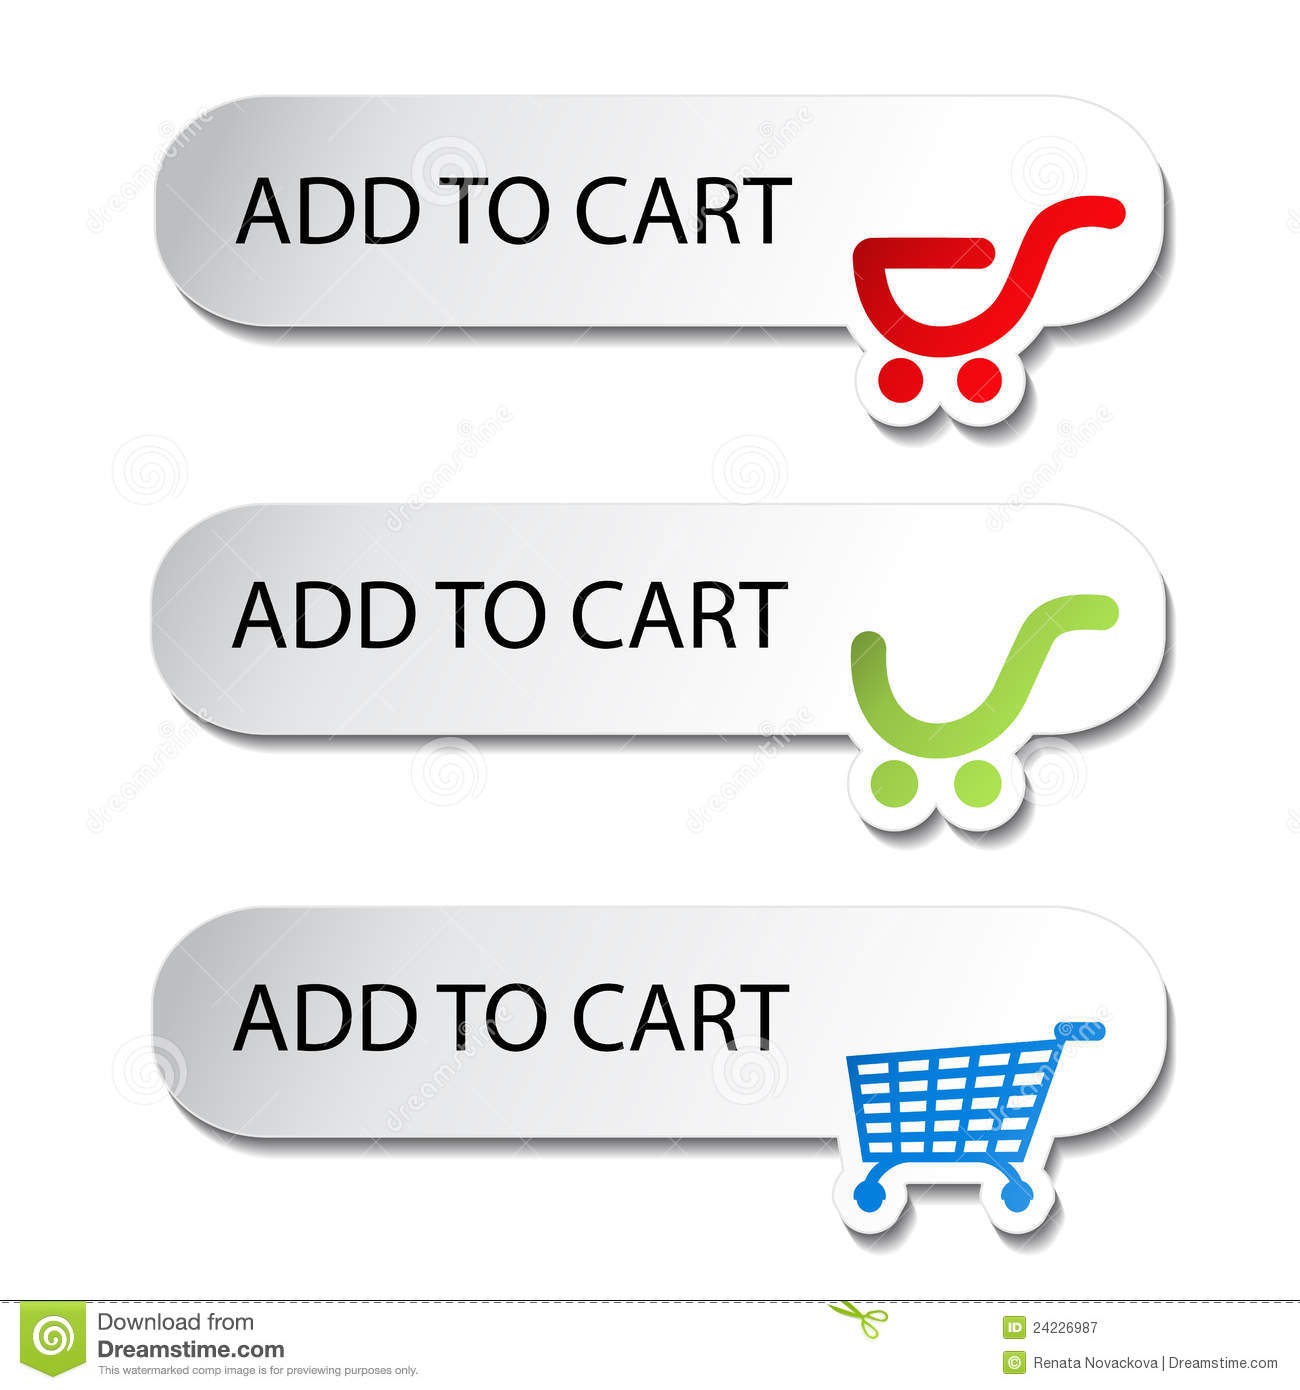 how to change add to cart button colour